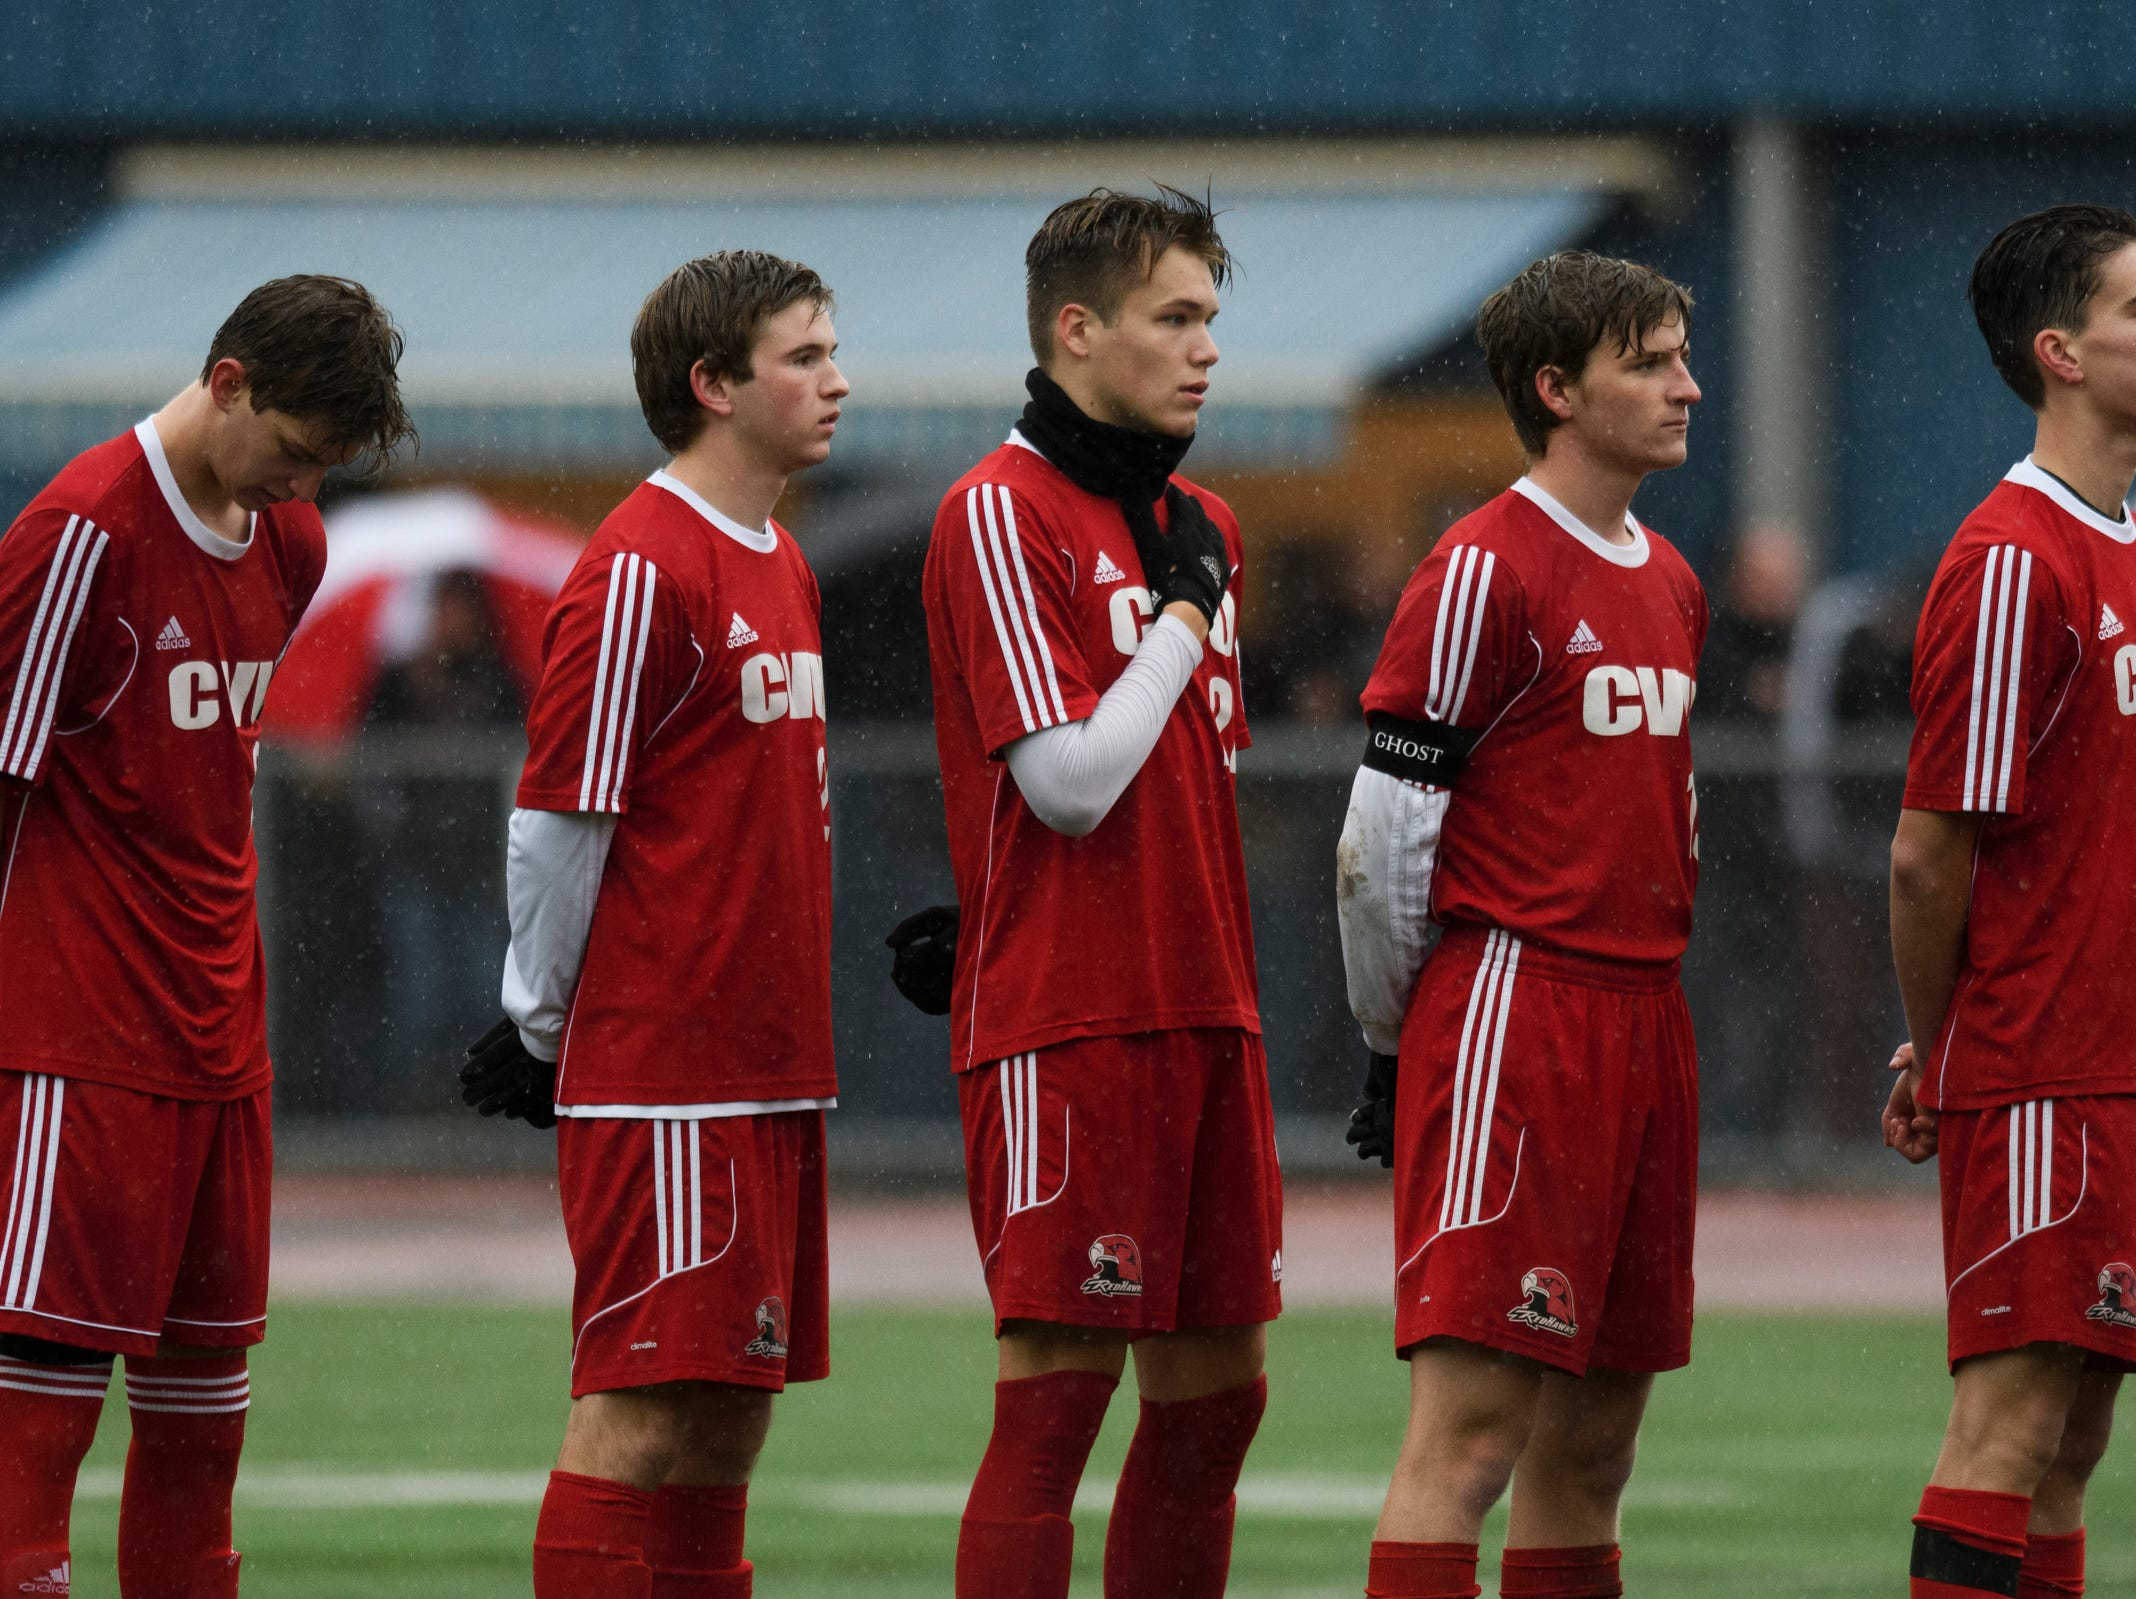 CVU listens to the National Anthem during the Division I boys soccer championship game between the St. Johnsbury Hilltoppers and the Champlain Valley Union Redhawks at Buck Hard Field on Saturday morning November 3, 2018 in Burlington.